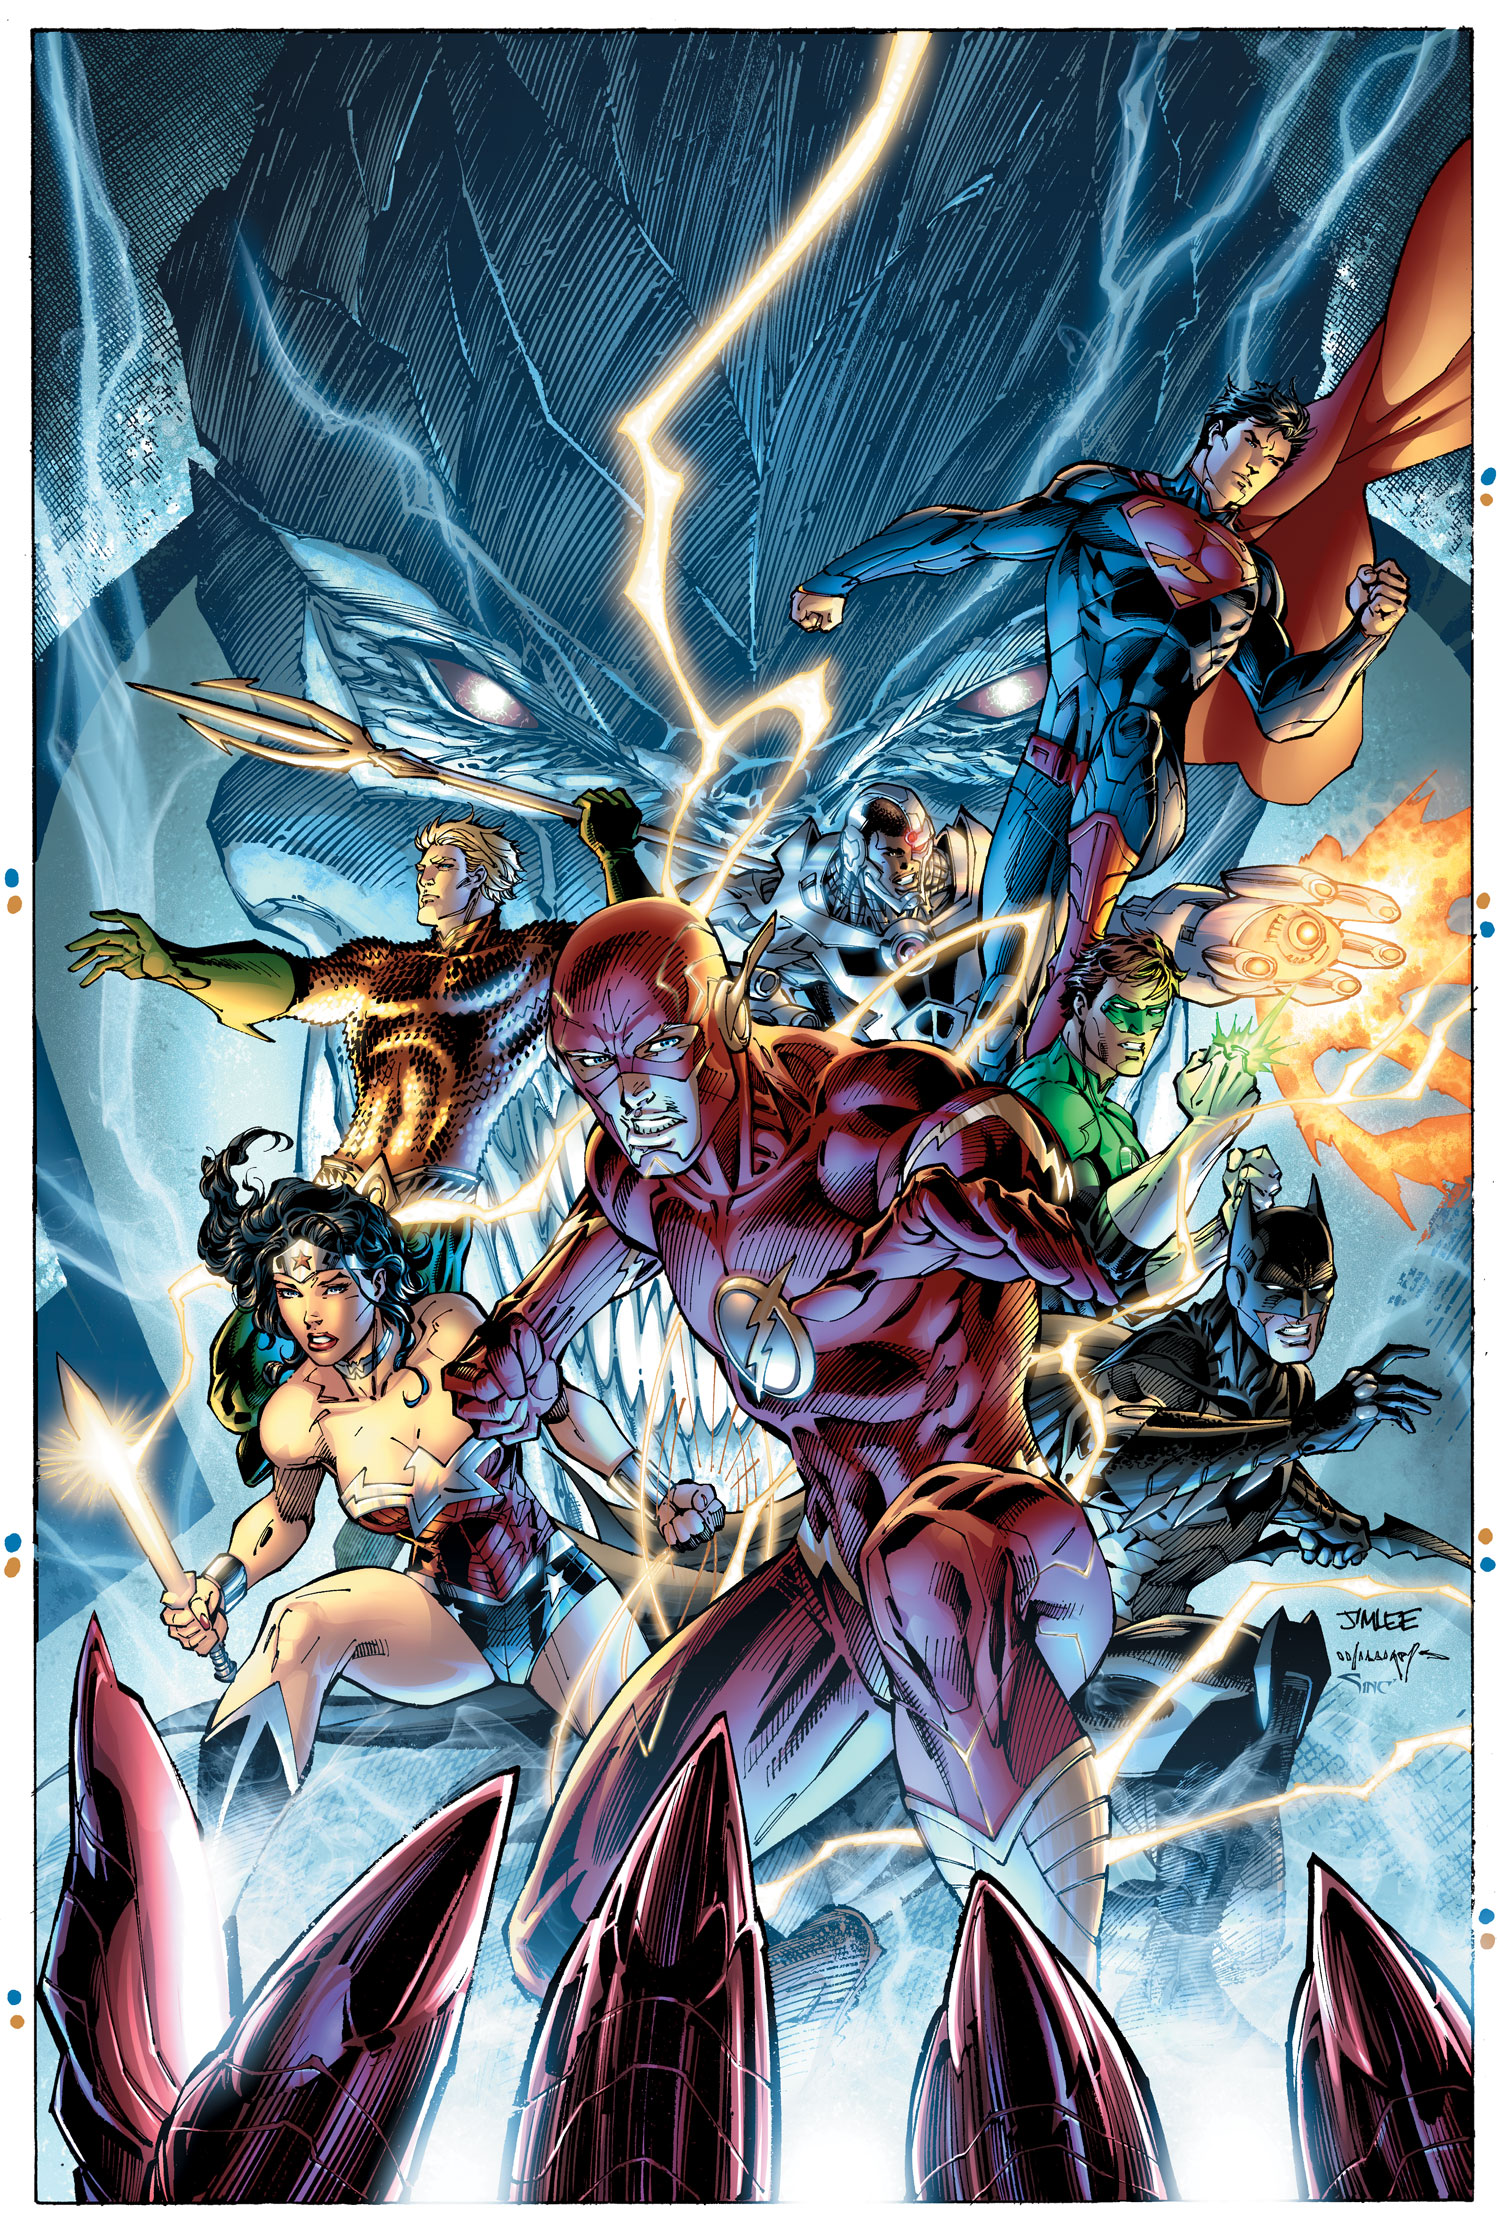 Justice League Vol 2 11 Textless.jpg